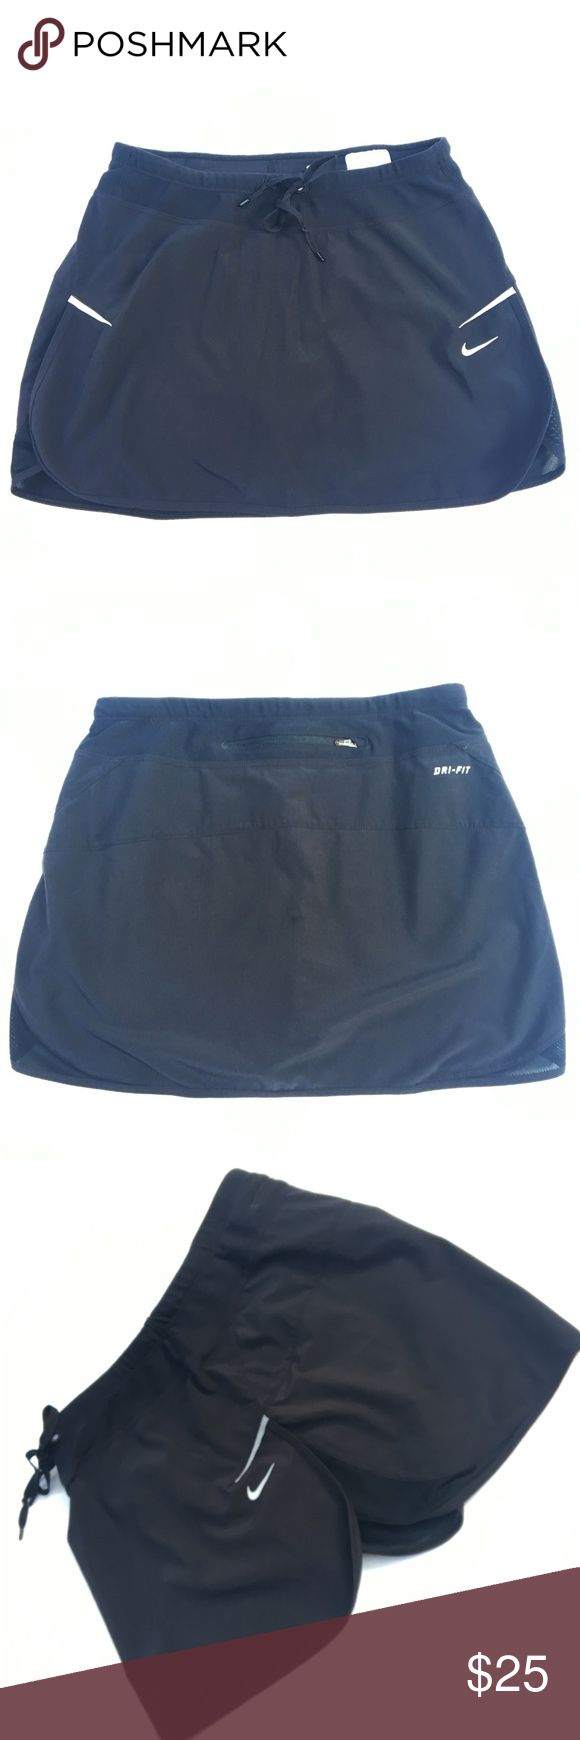 "Nike Running Skort Mini Skirt Black Dri Fit XS WA7 Nike Women's Skorts Black Dri-Fit Running Skirt over Shorts, A Line, Reflective Swoosh and Sides.  Back Zipper Waist Pouch. Size: XS X Small  Waist: 12""  Inseam: 3.5"" Length: 11.75""  Condition: Very Good. Comes from a pet and smoke free environment!  Please review pictures and contact me if you have any questions. Color: Black Material: 86% Polyester, 14% Spandex Country: Singapore Style #: SU111103BOD Cut #: 364046-012 Care: Machine WT…"